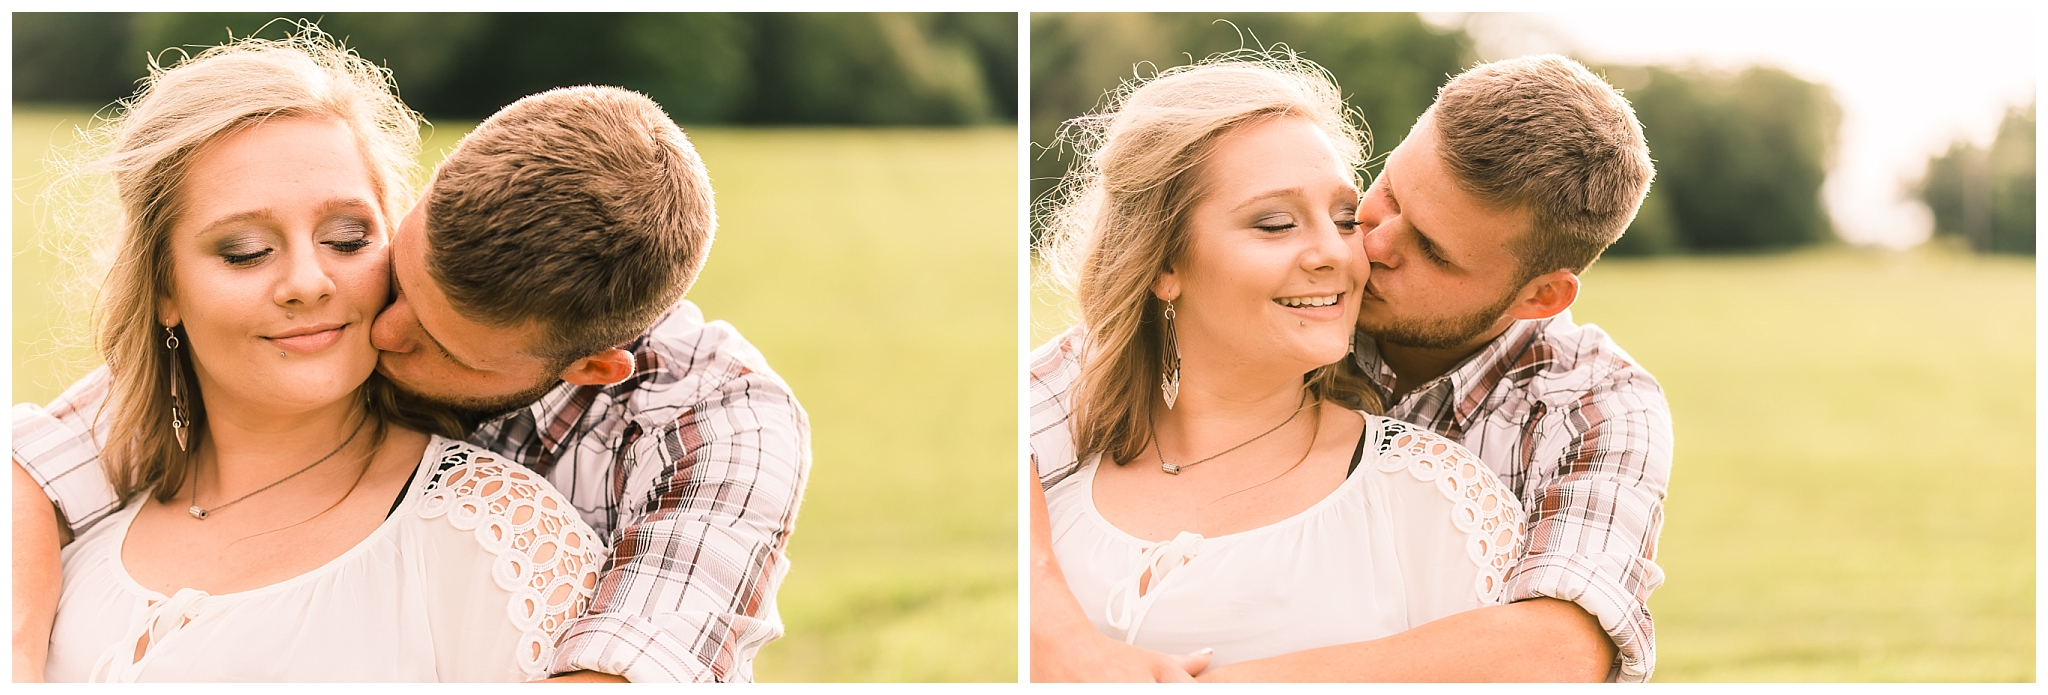 lafayette indiana sunset engagement photography county fair adventure new adventure productions_0683.jpg